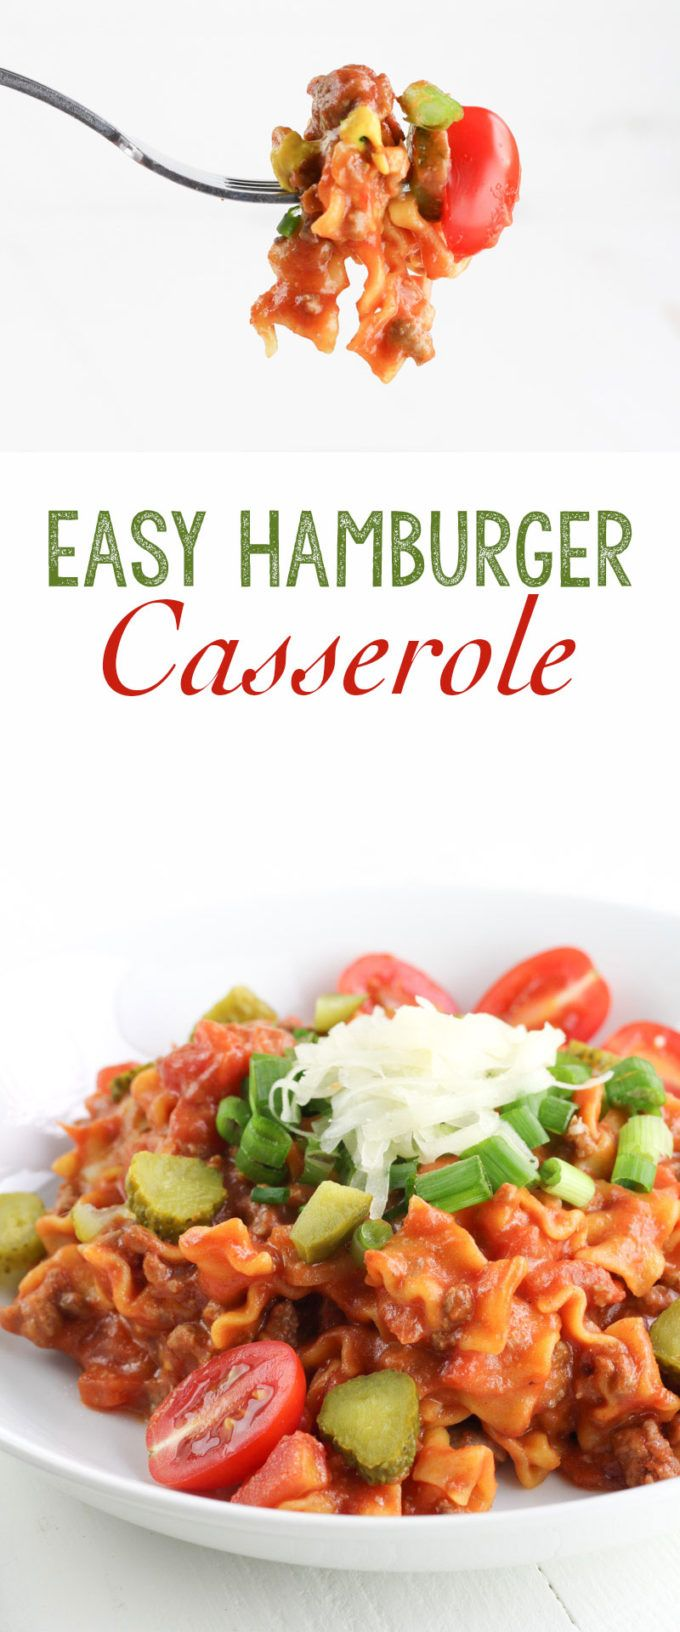 Easy Hamburger Casserole images